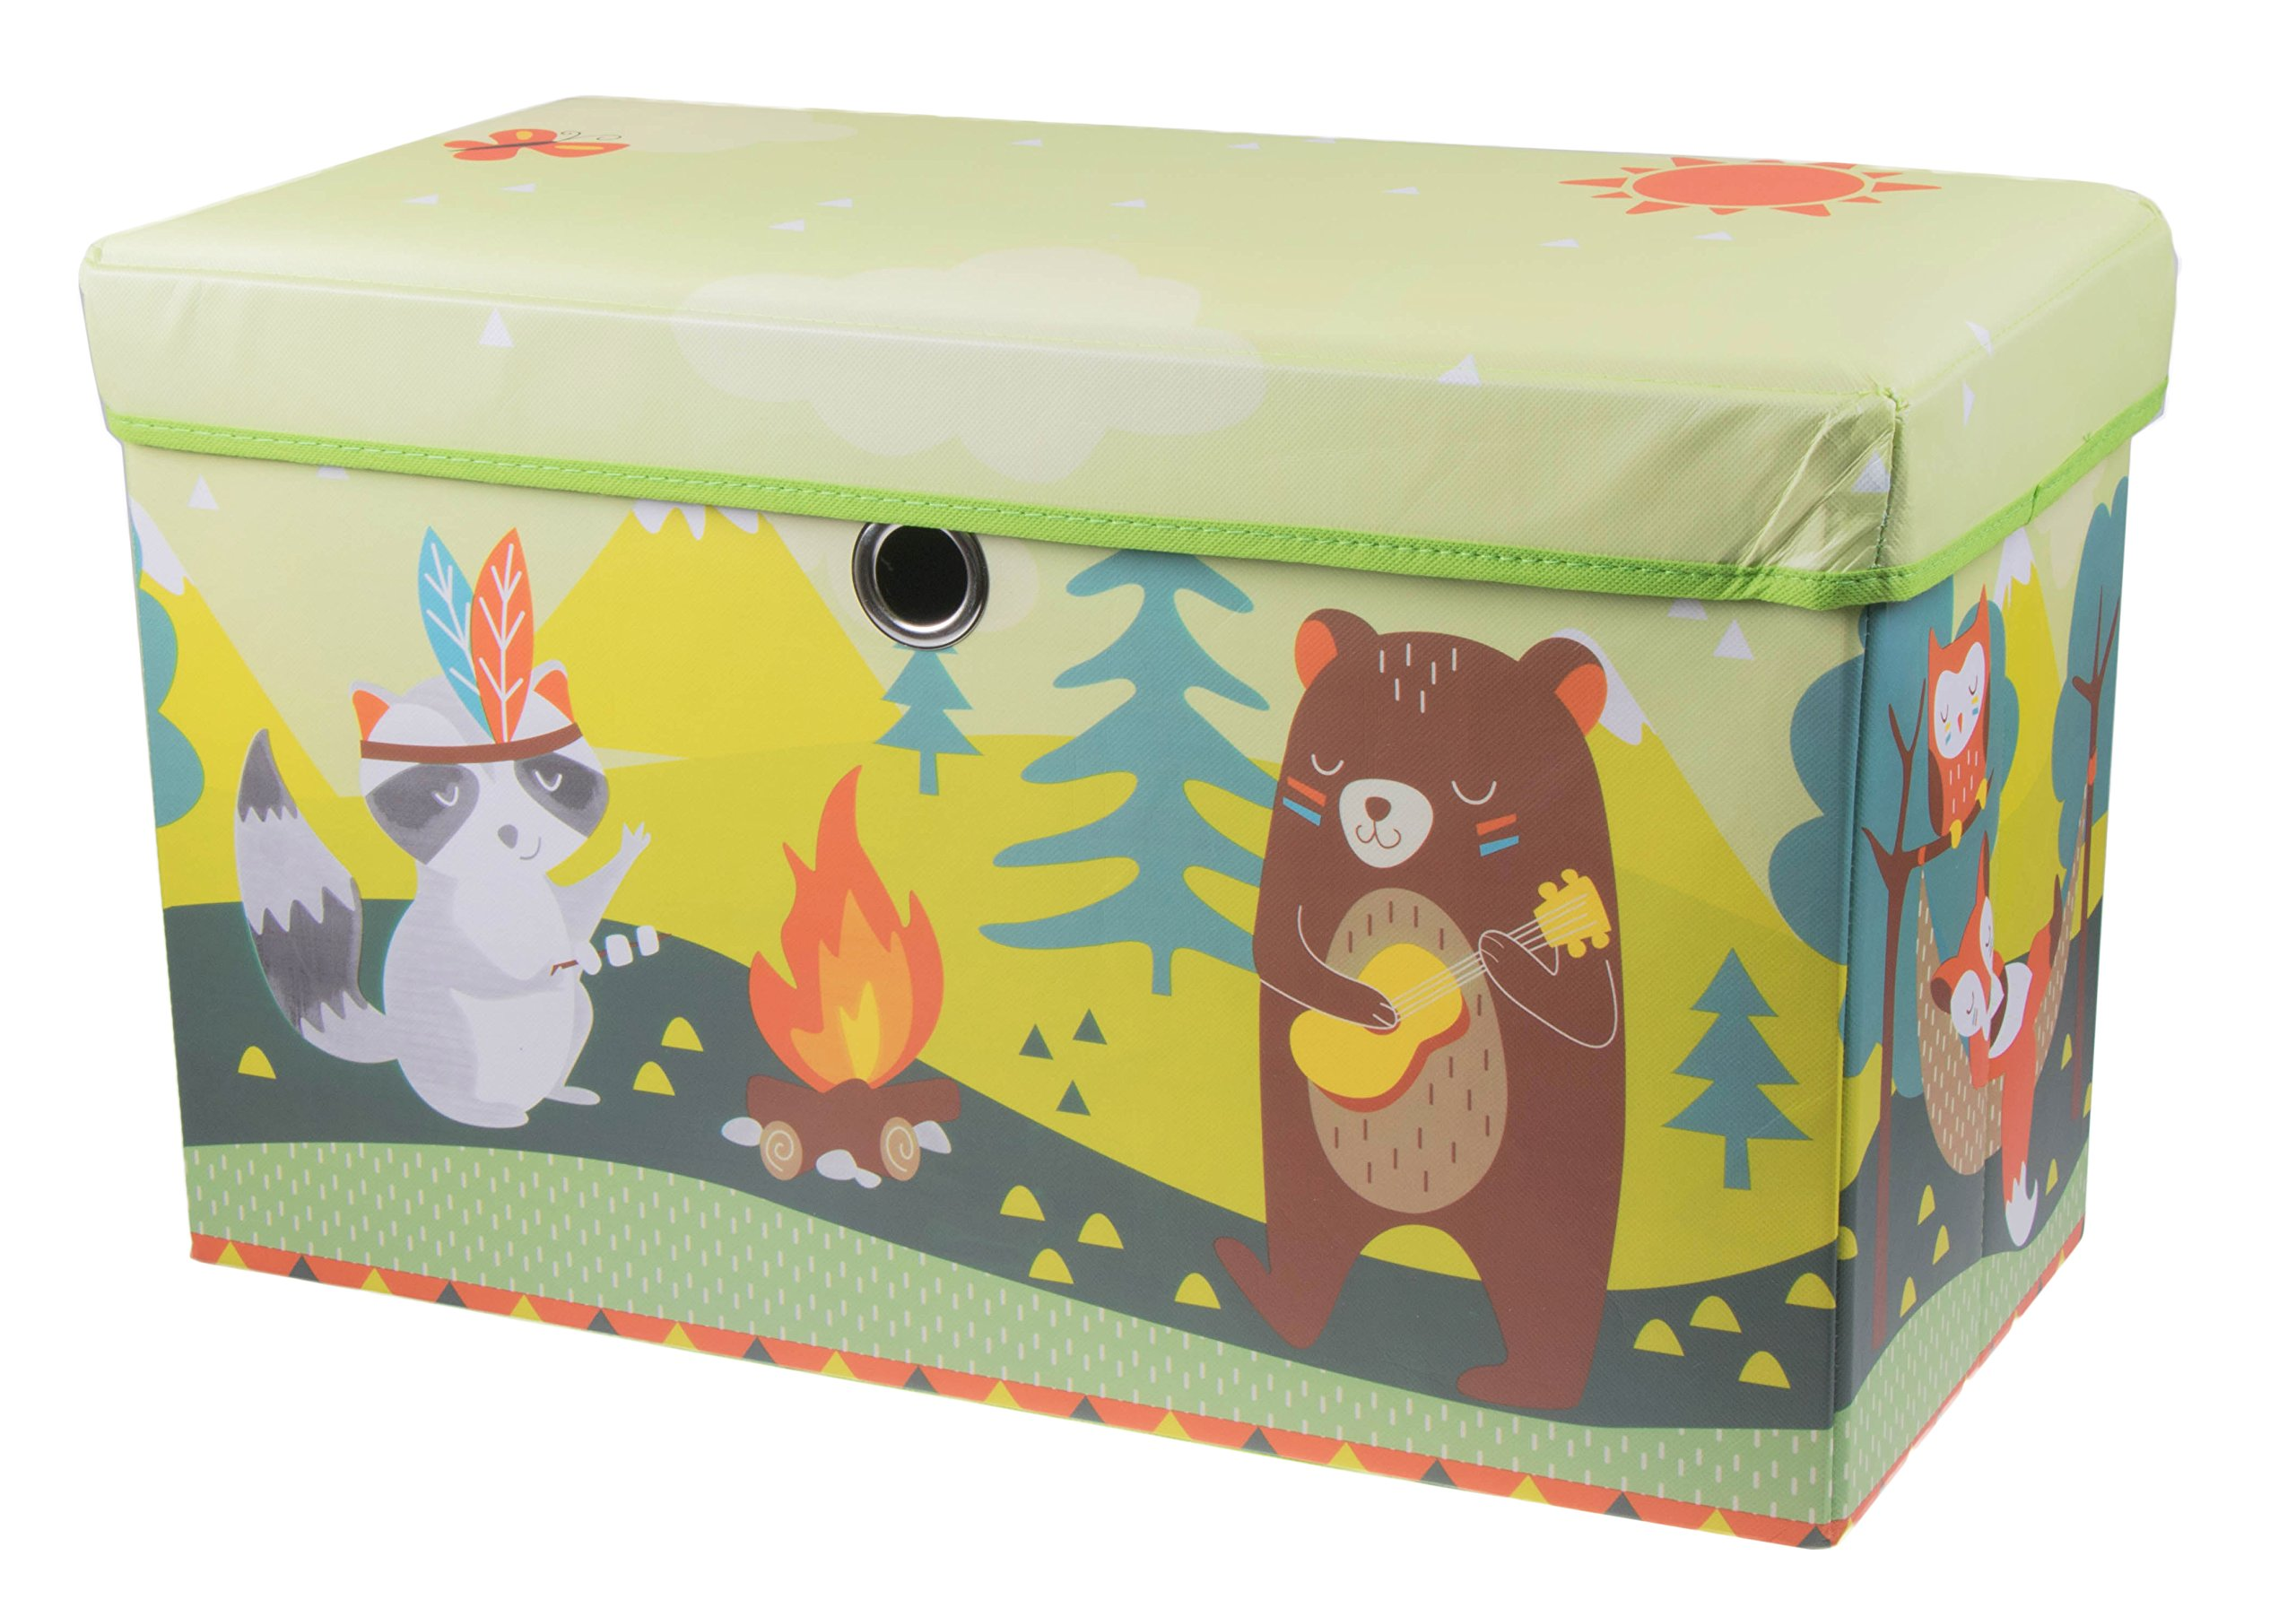 Cute Animal Camping Collapsible Storage Organizer by Clever Creations | Storage Ottoman for Bedroom and Living Room| Perfect Size Chest for Books, Clothes, Electronics, and Gadgets by Clever Creations